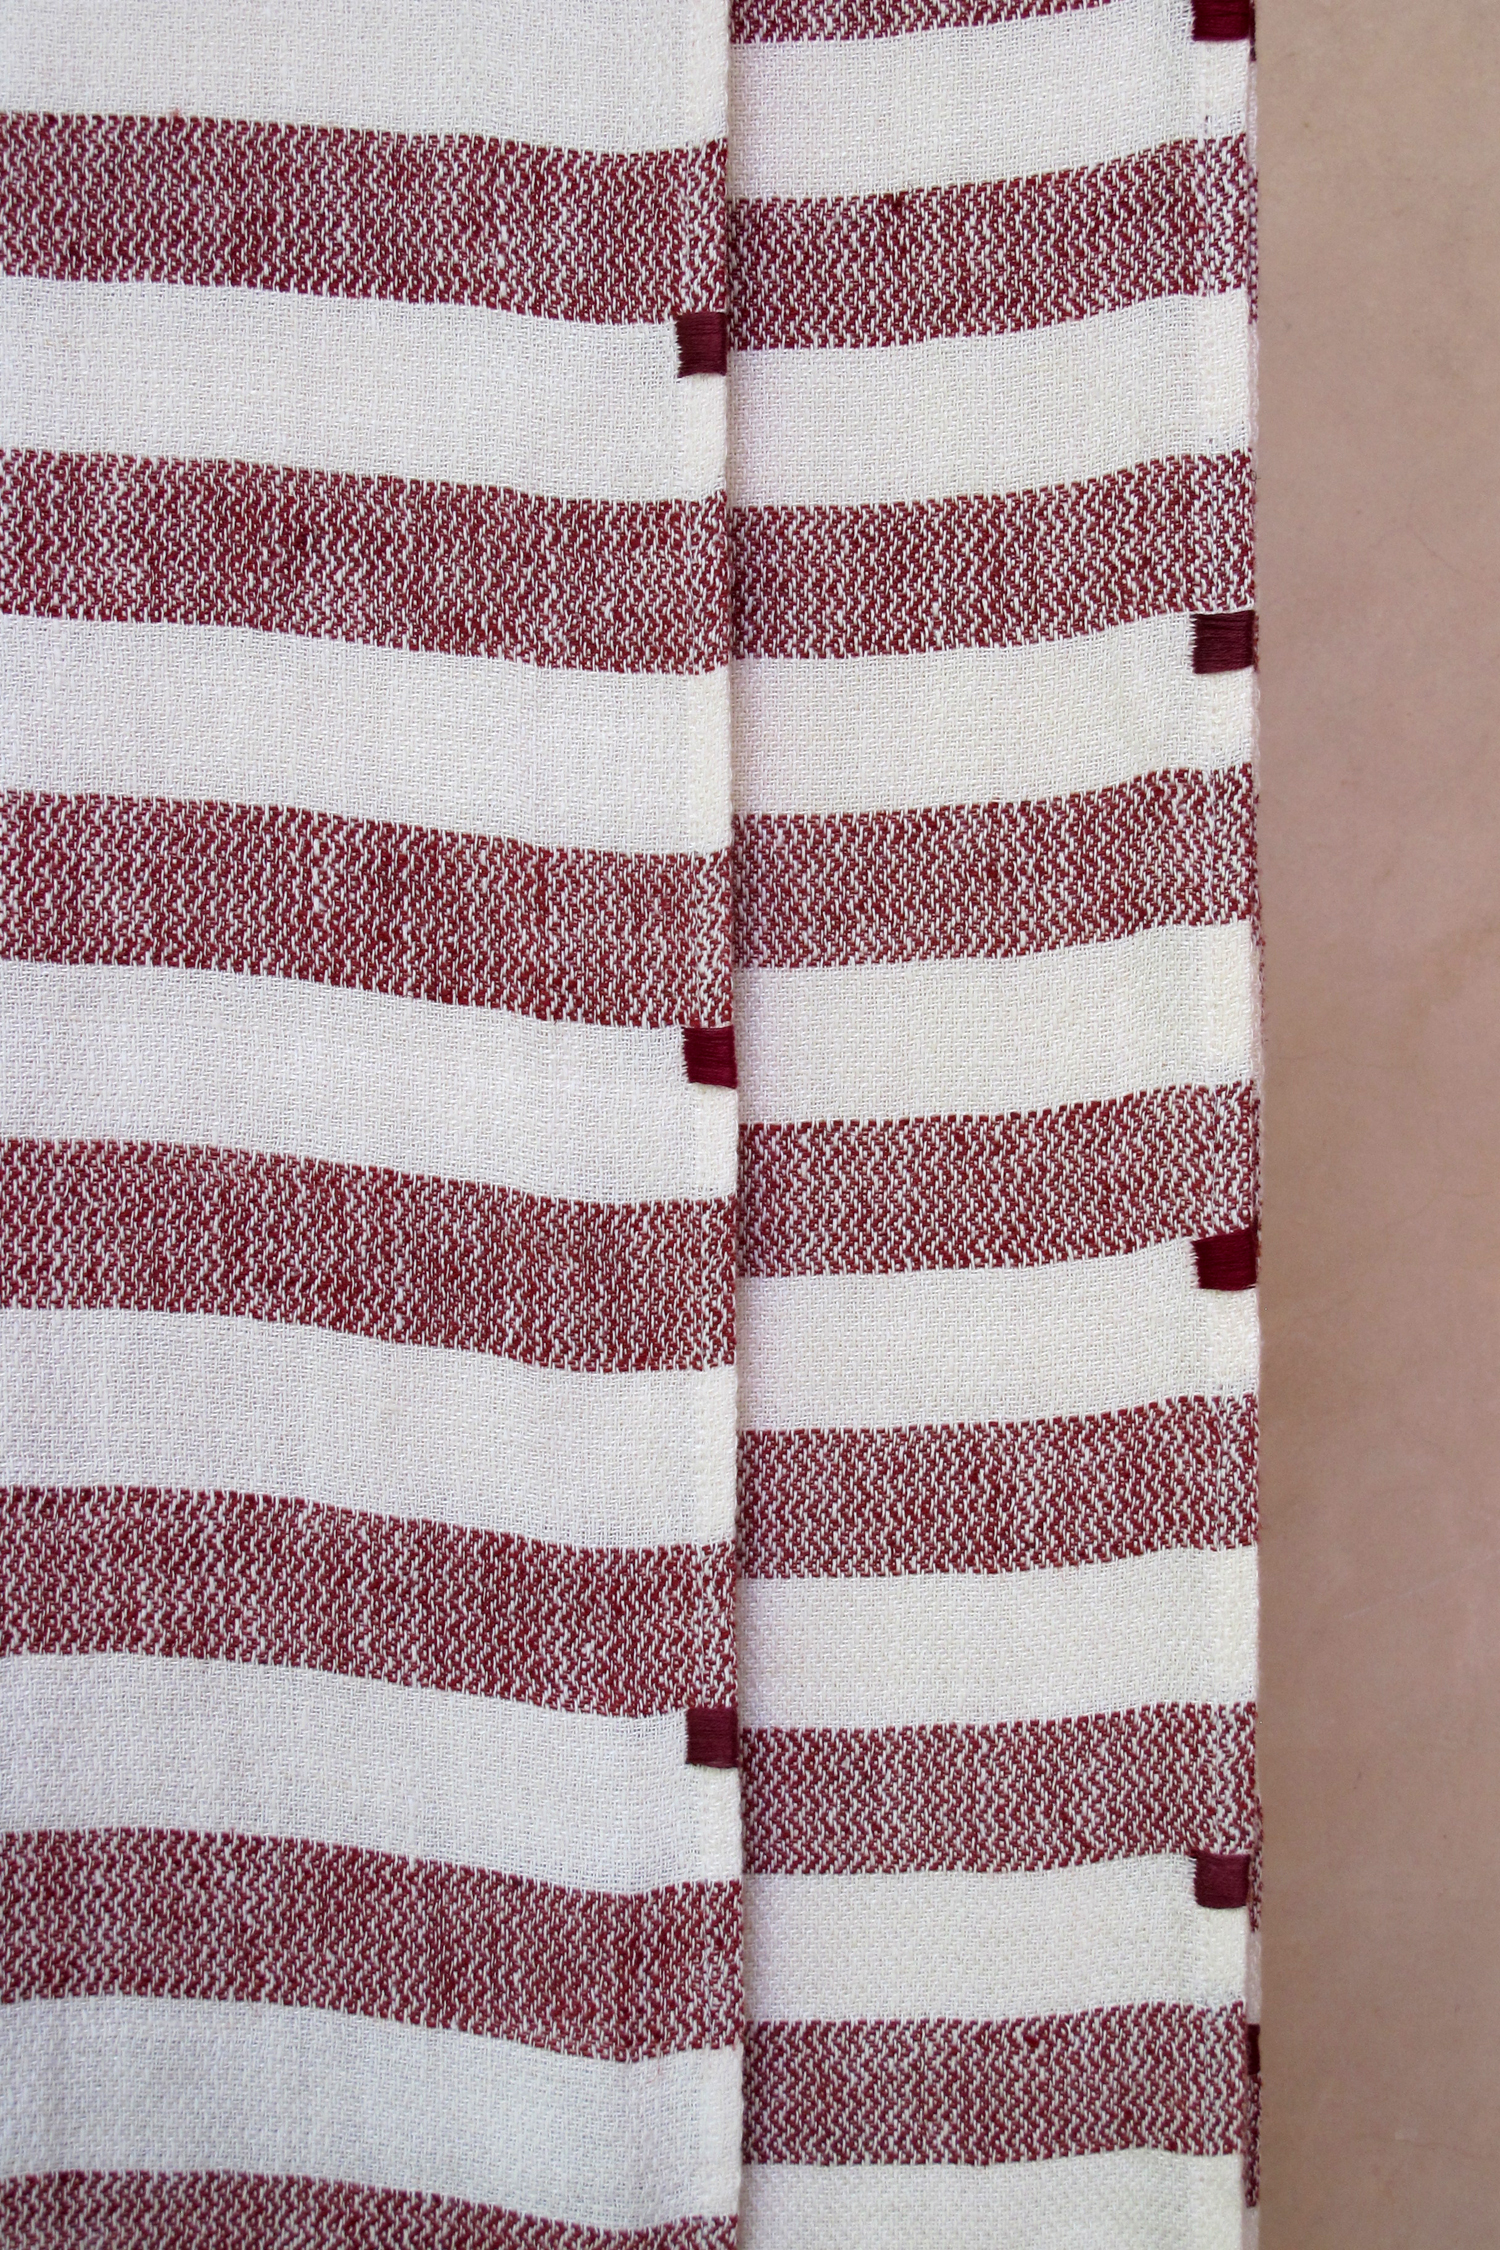 bathlinen_serviette_invitee_riga_bordeaux_10.jpg